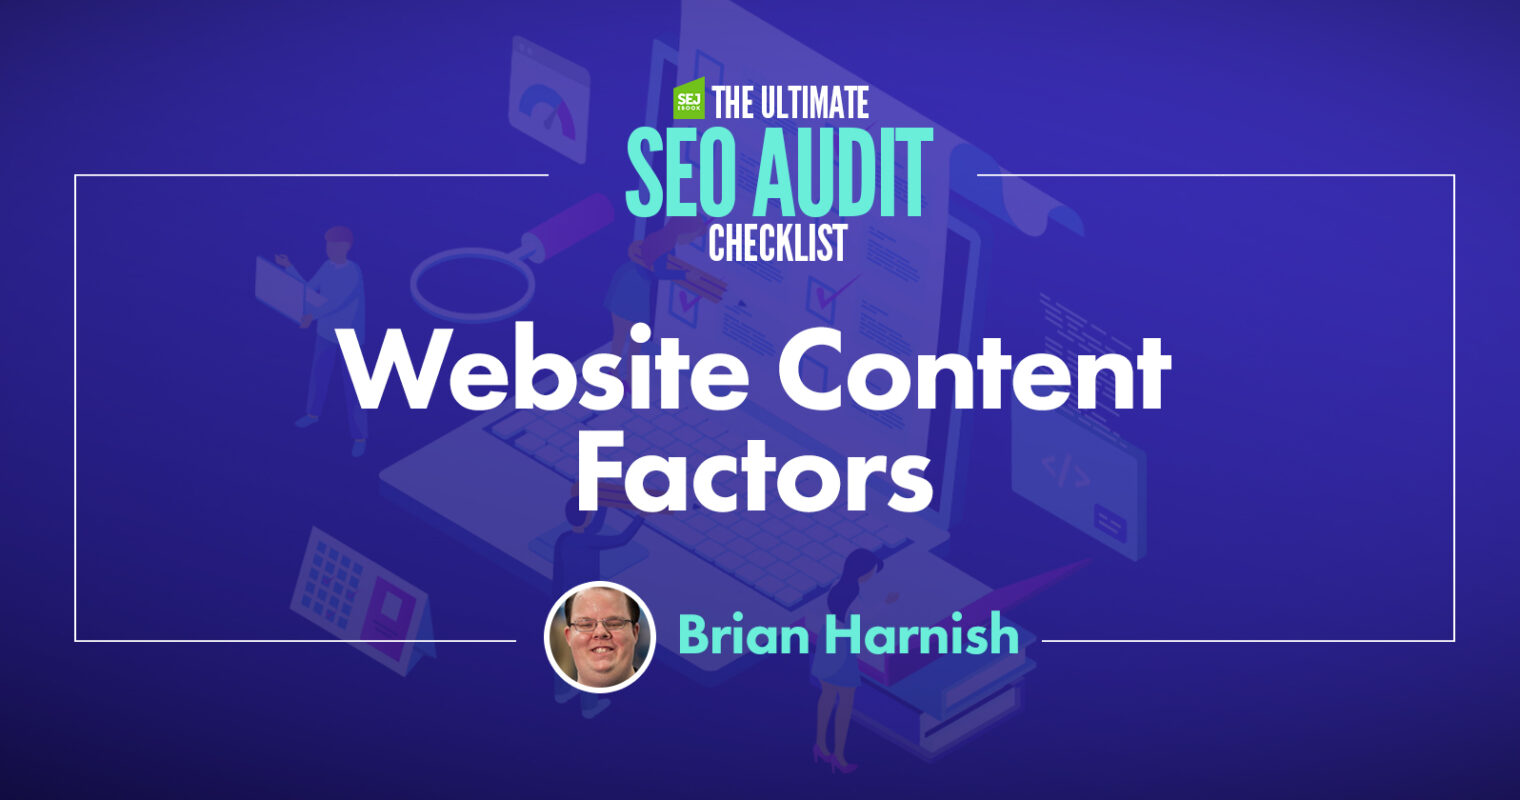 10 Website Content Factors You Must Check During an SEO Audit